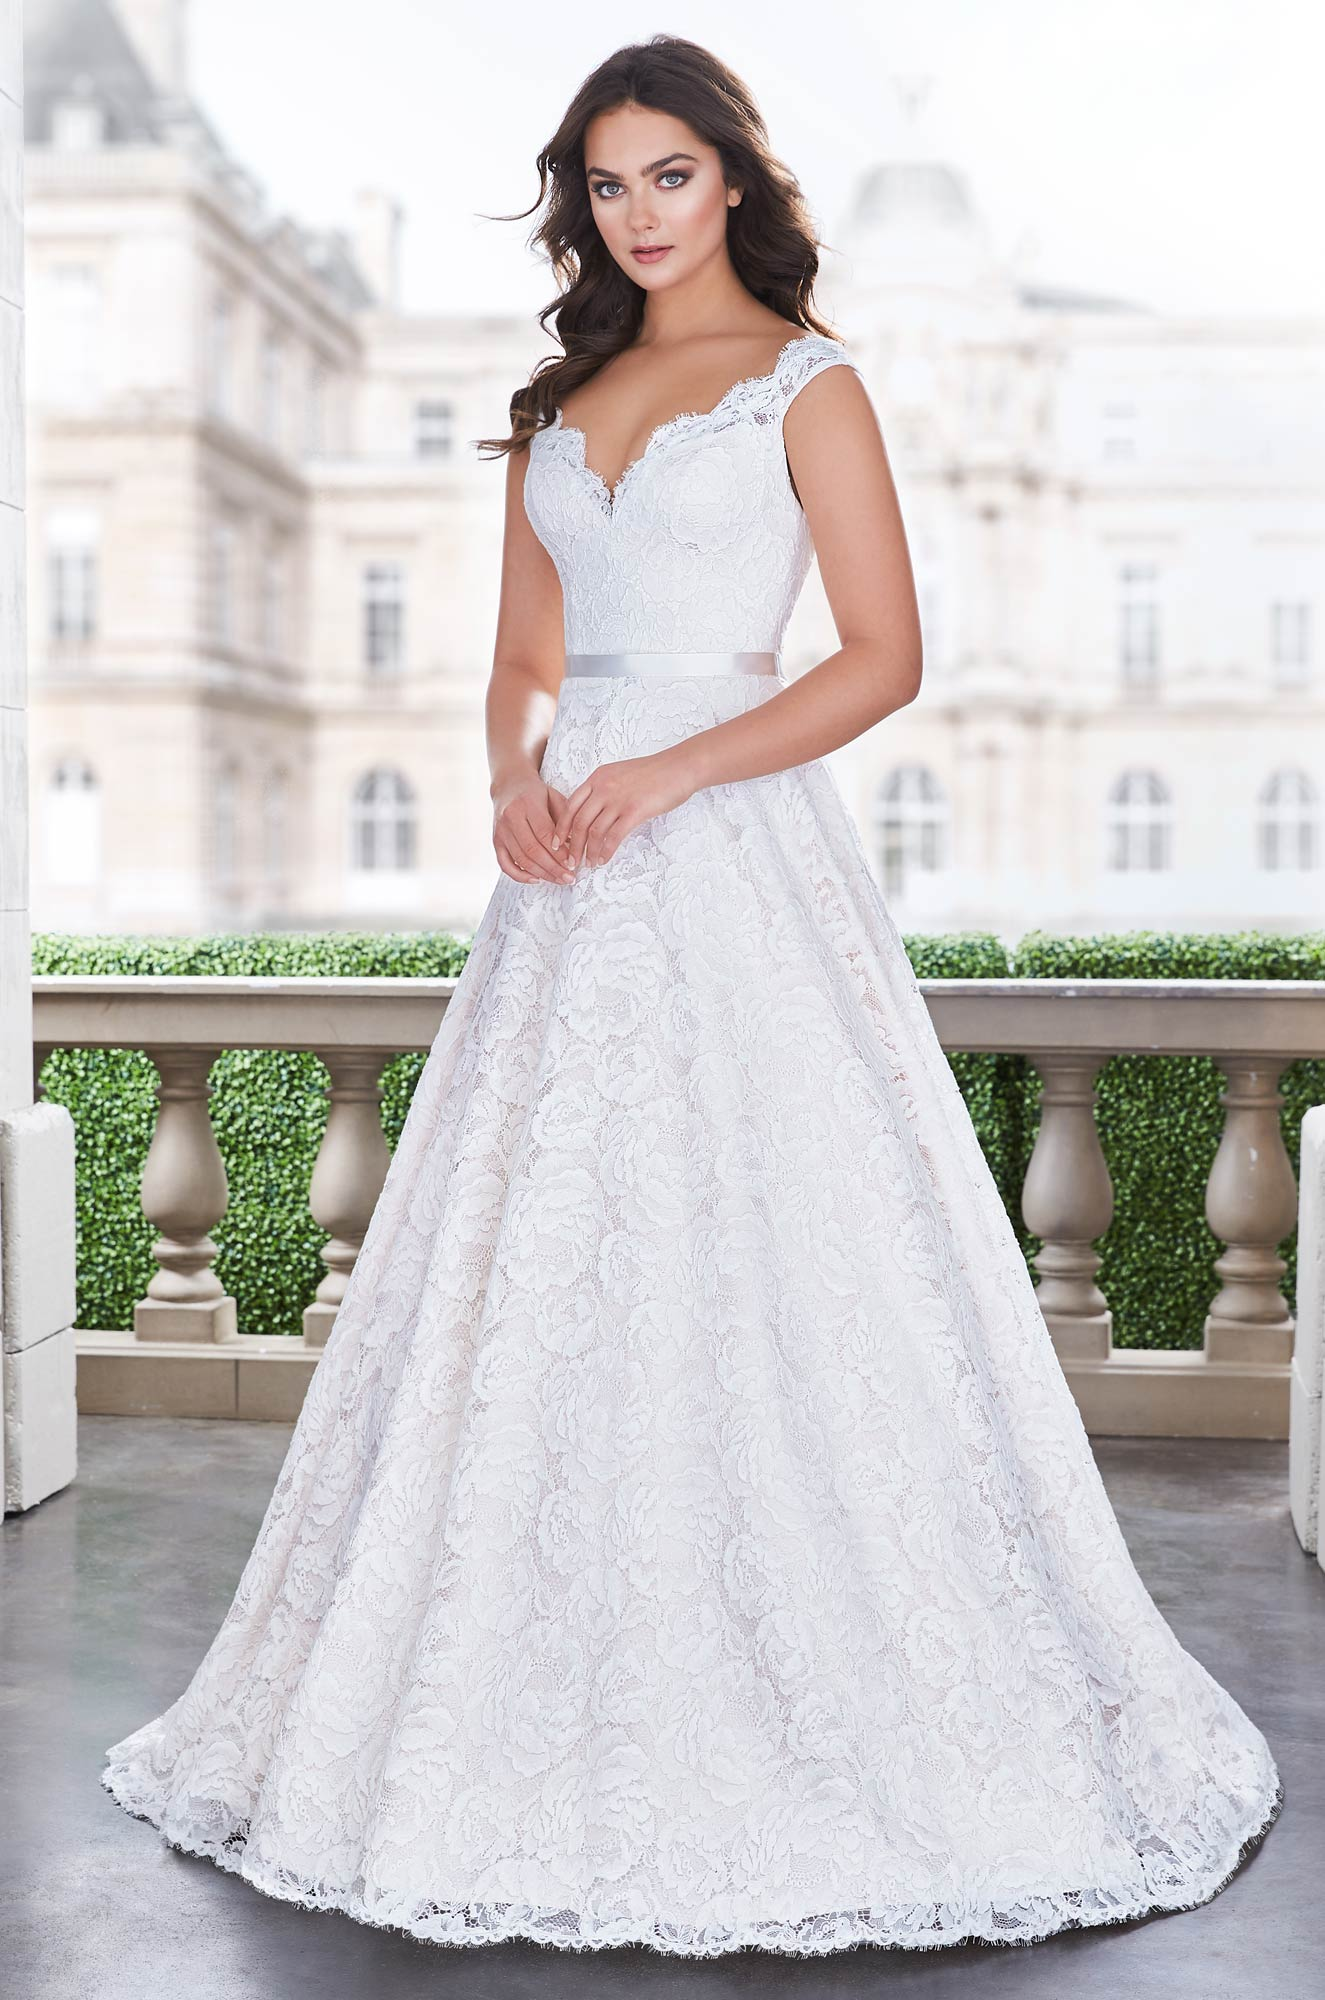 Princess Lace Wedding Dress – Style #4861 | Paloma Blanca